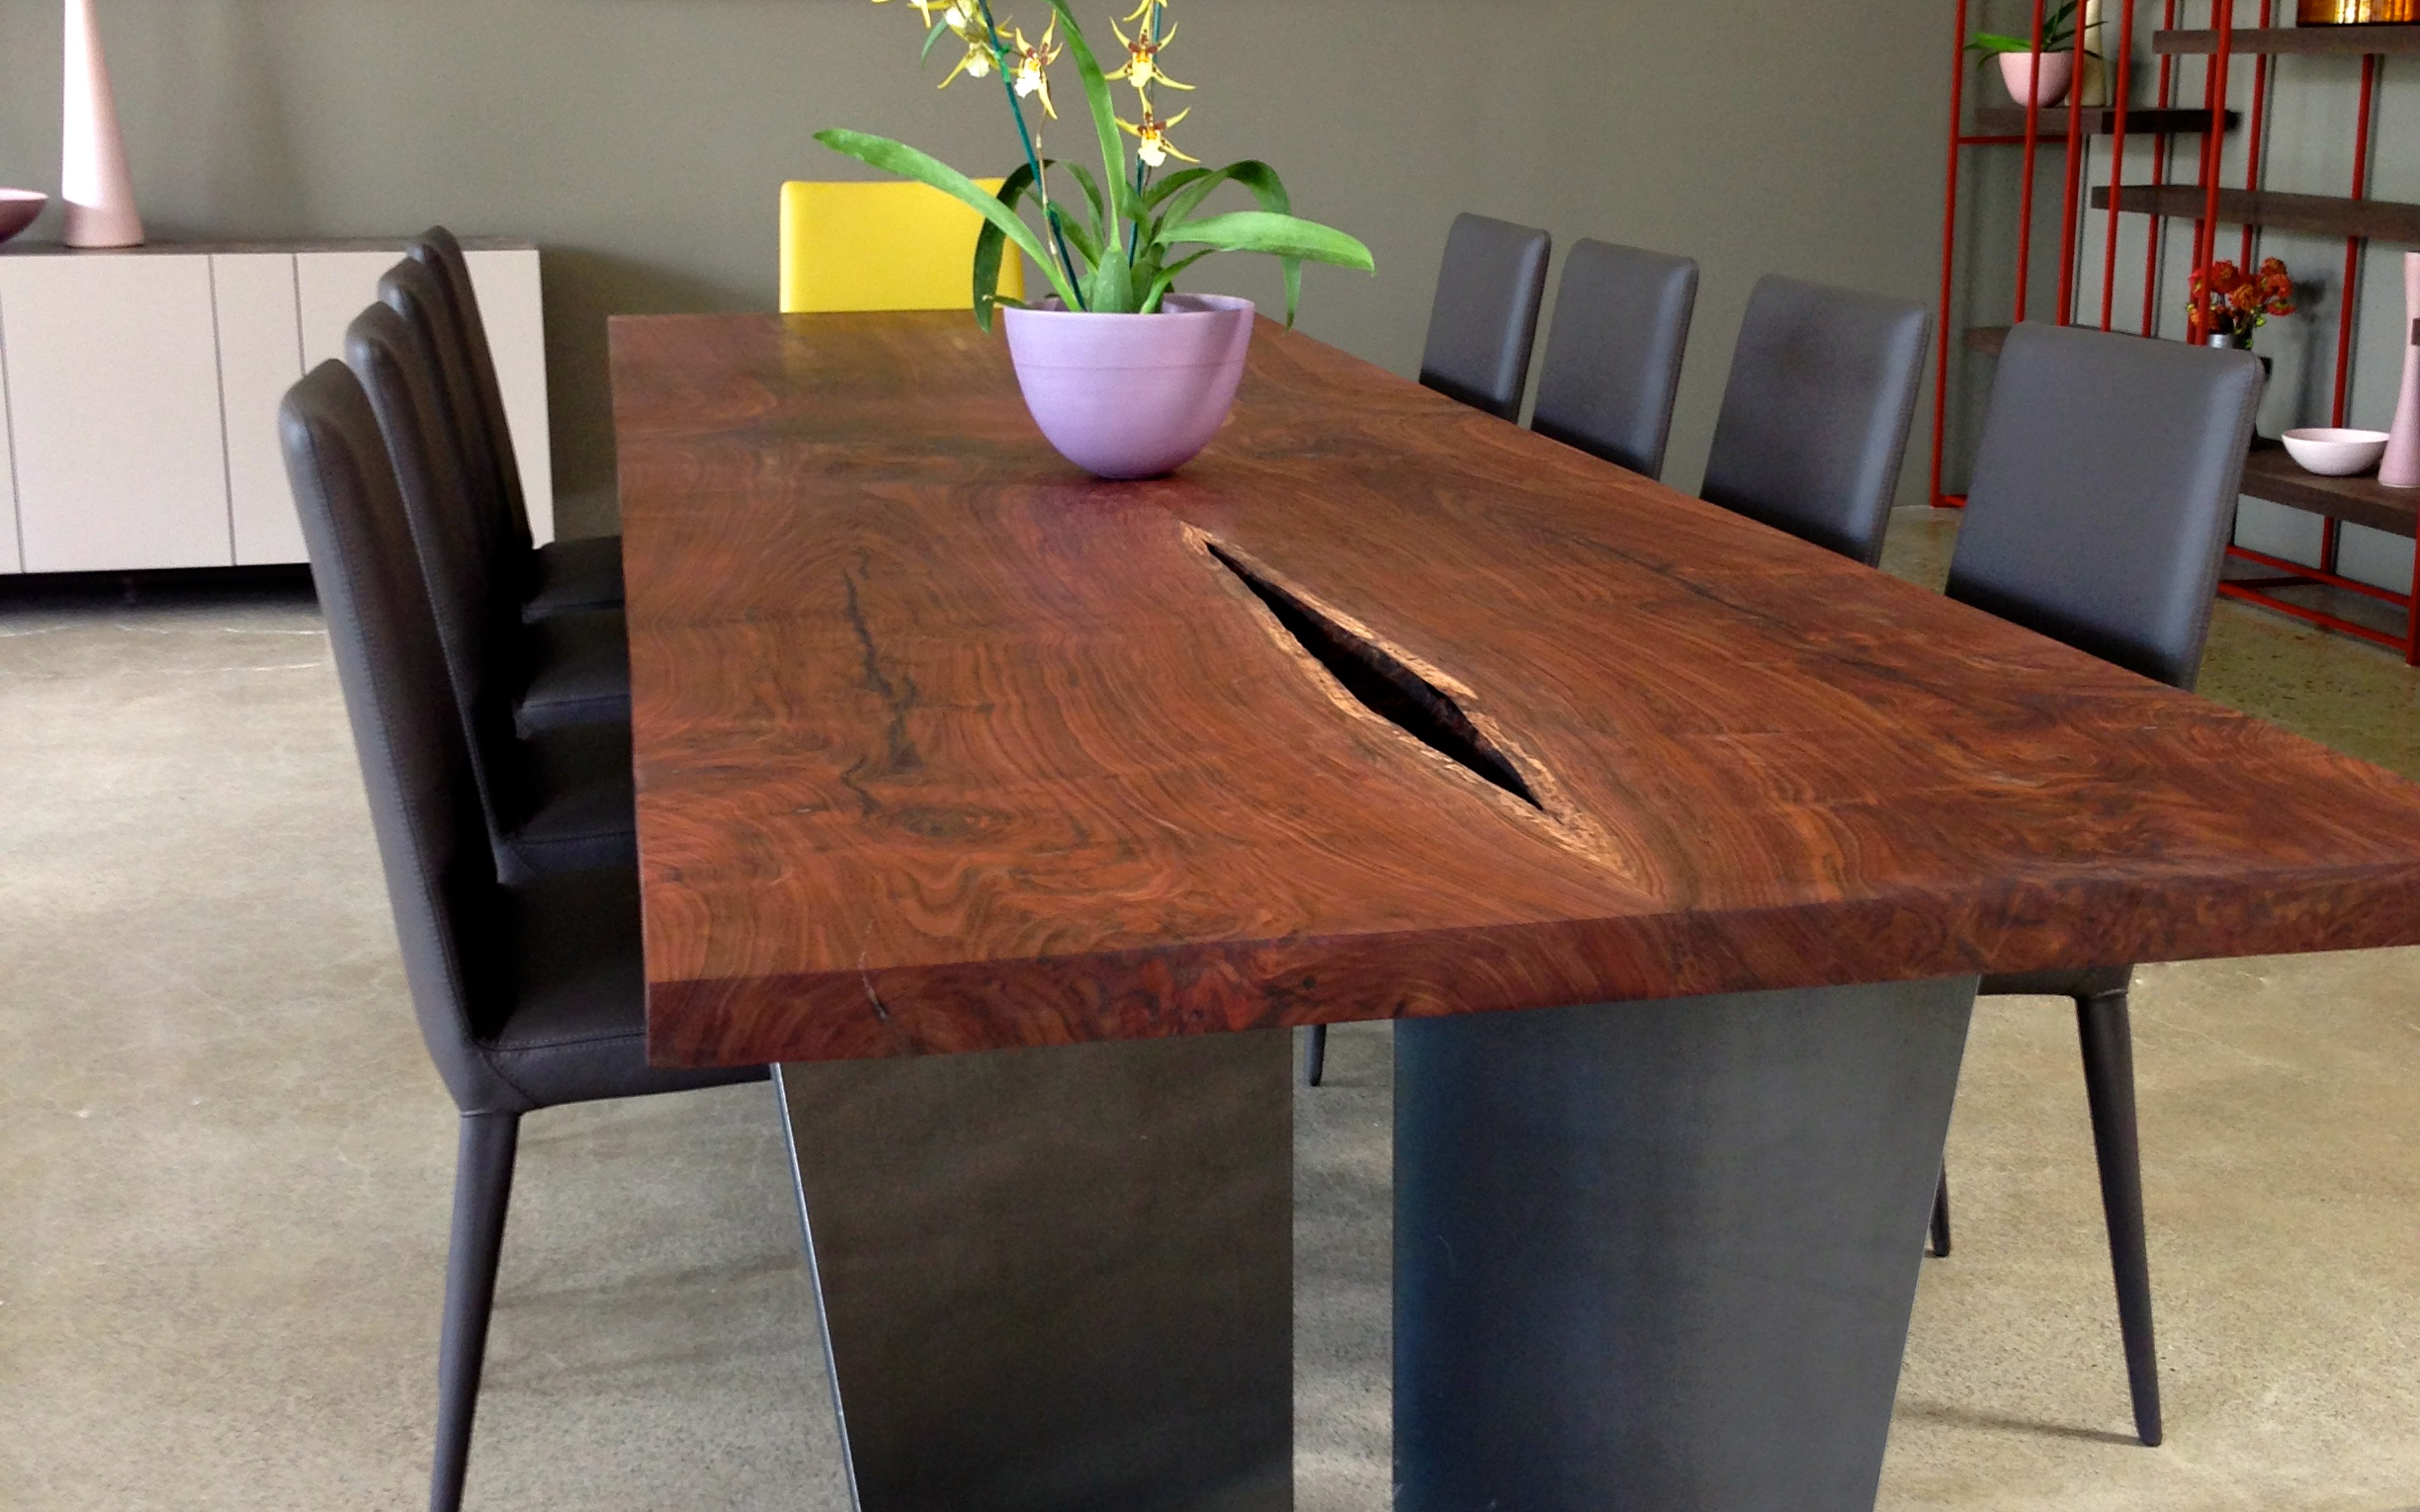 Original Timber Co. dining room table